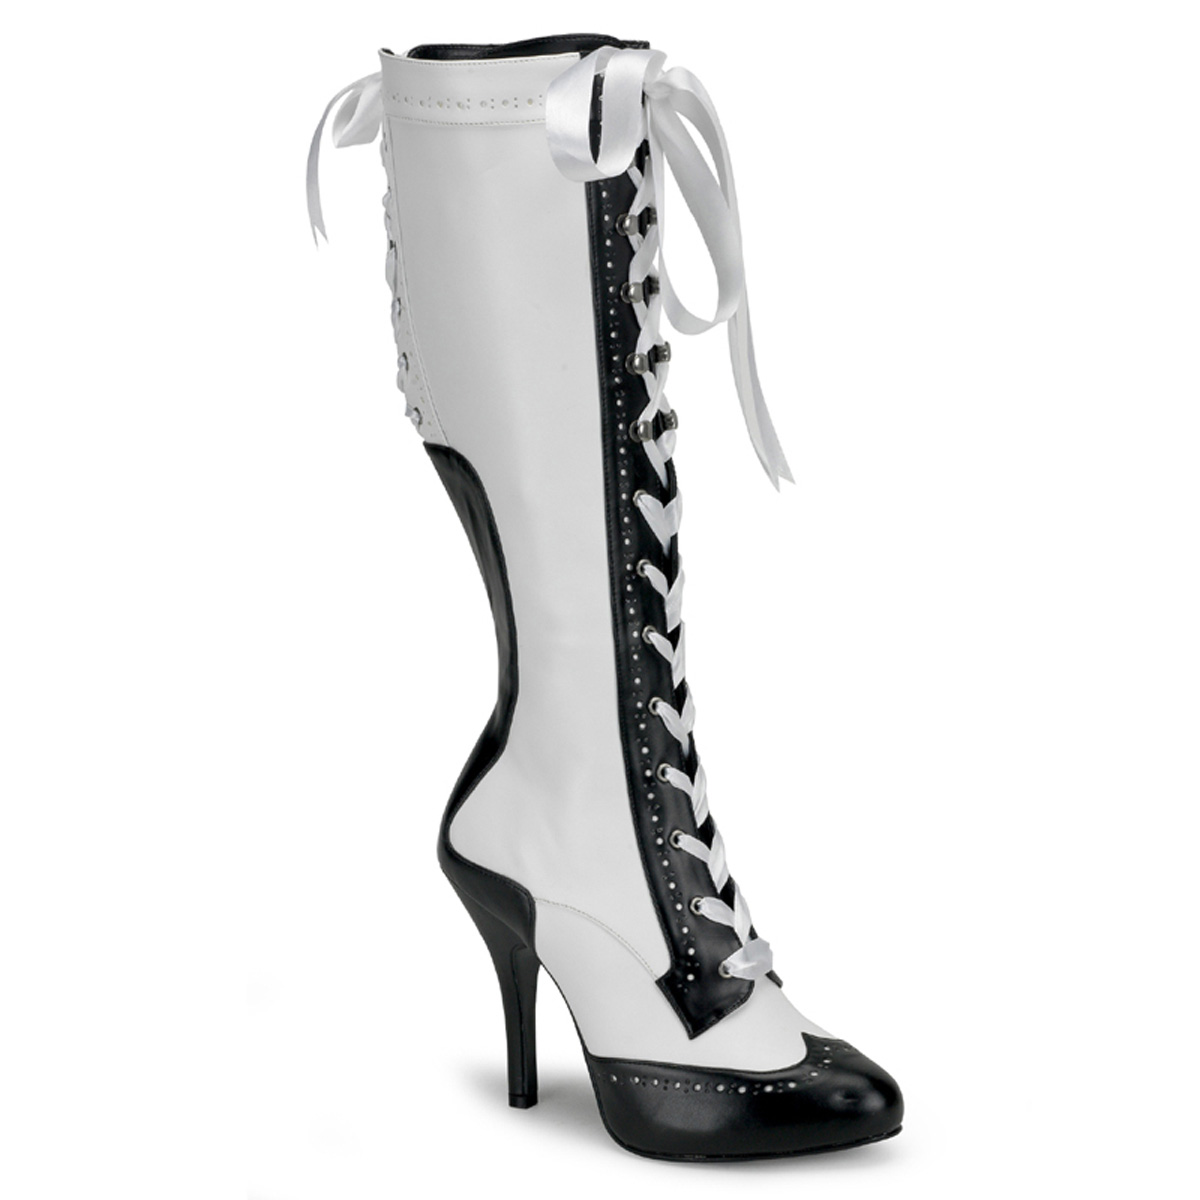 PLEASERs 4 1/2 inch Heel Ribbon Lace Up Knee Boot with Concealed Platform White-Black Faux Leather at Sears.com